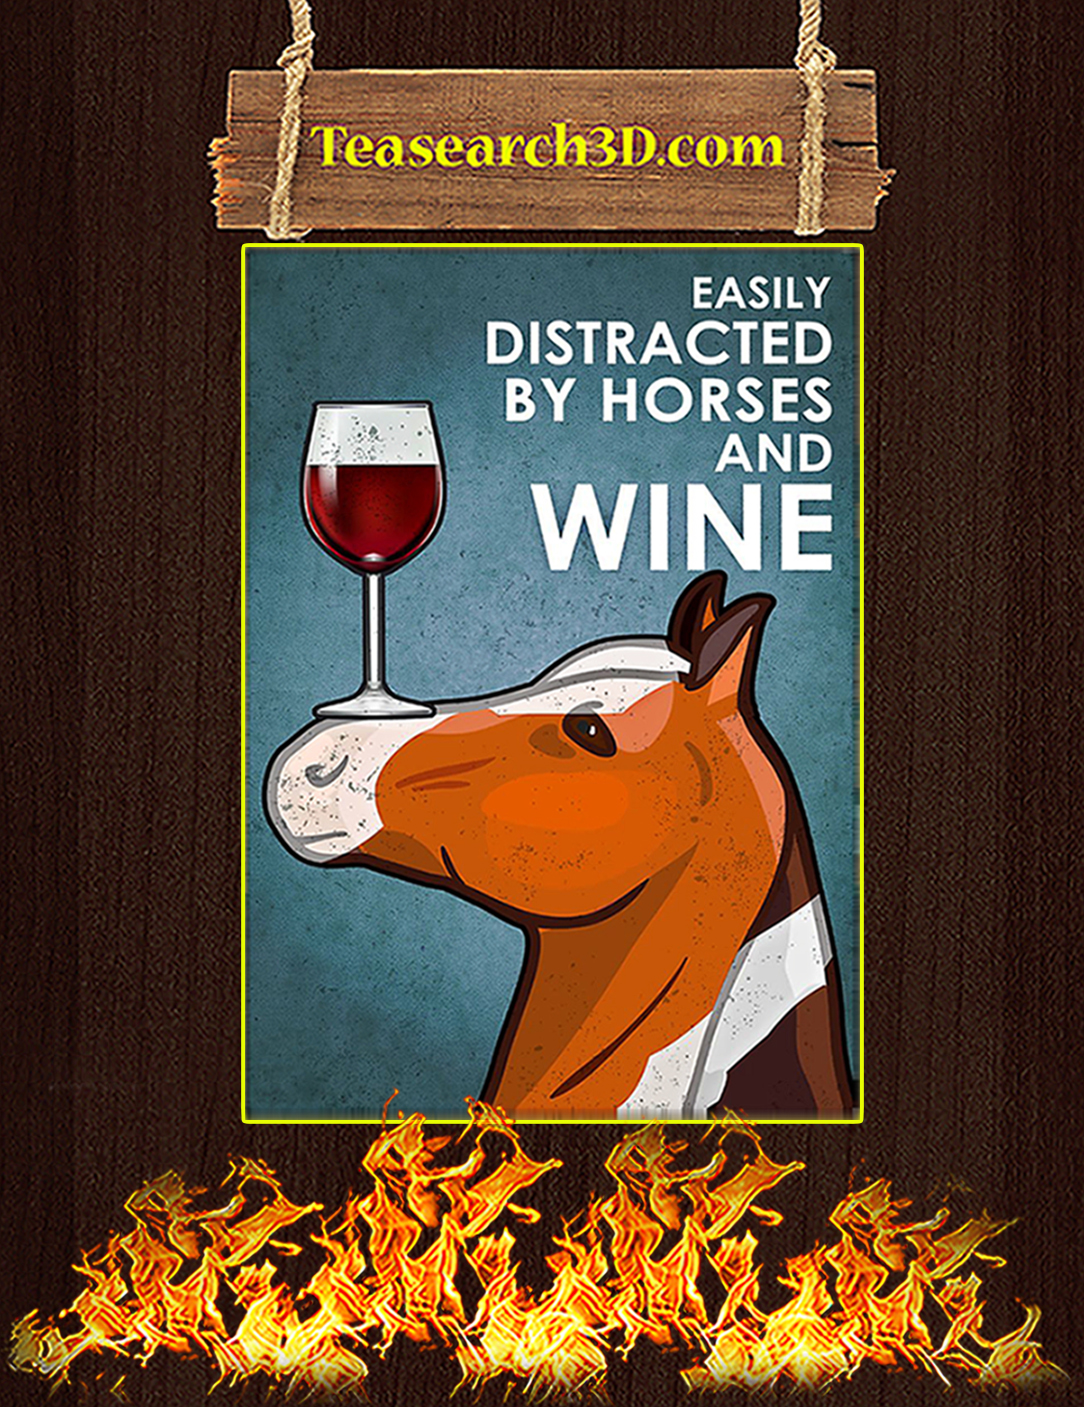 Easily distracted by horses and wine poster A2